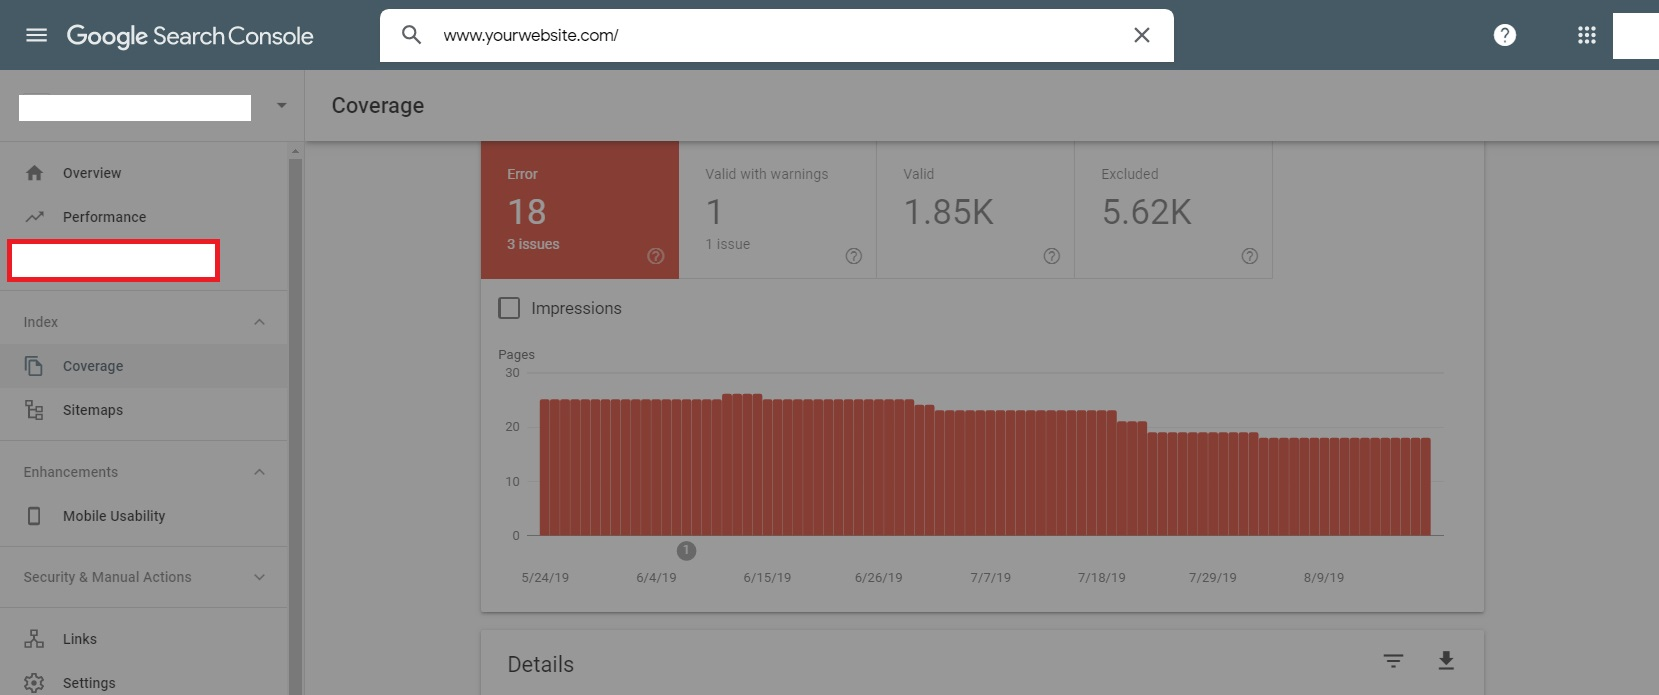 Google Search Console URL Inspection Tool